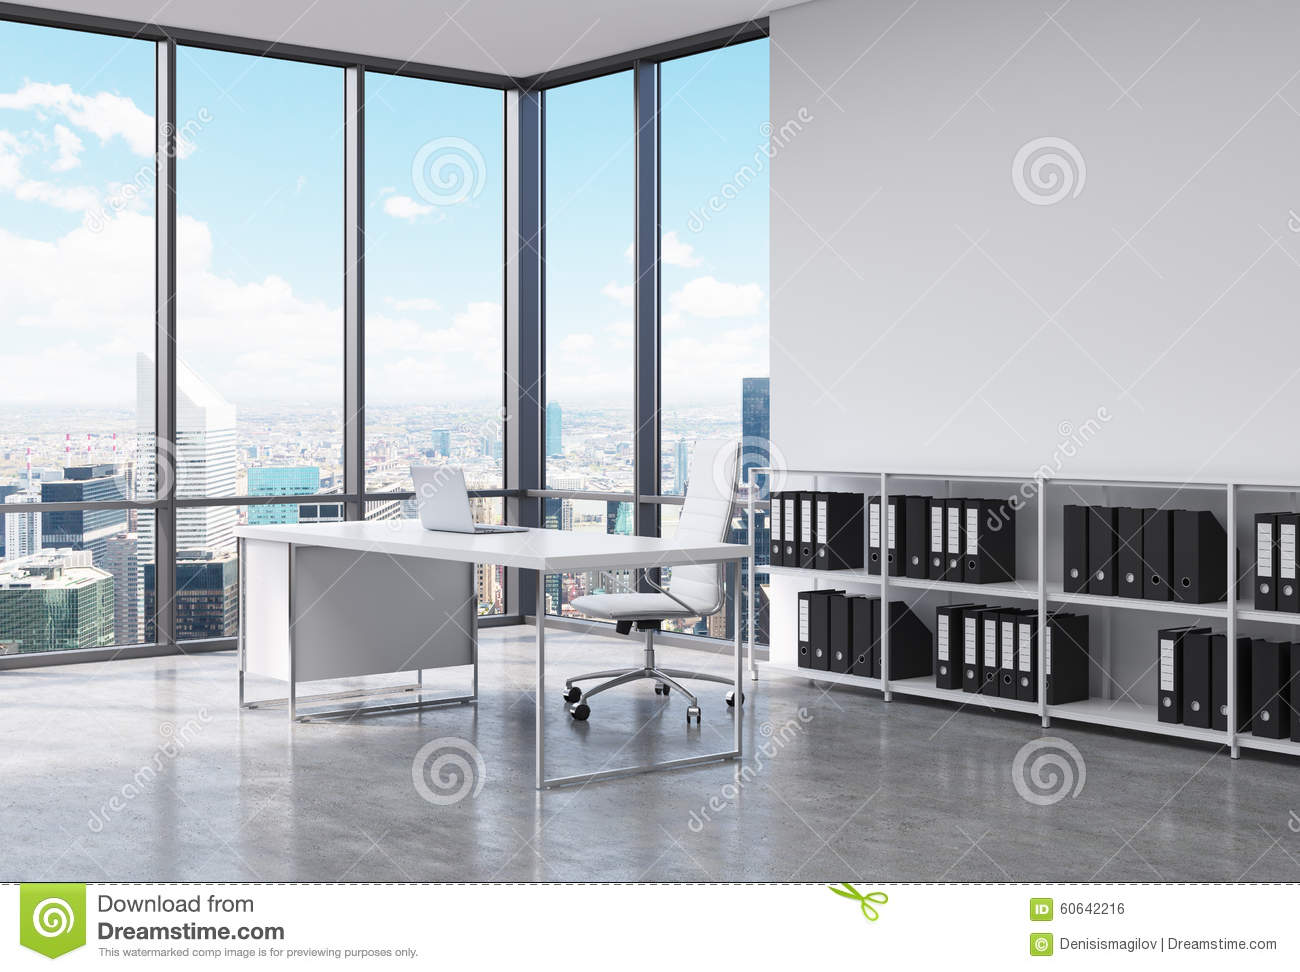 contemporary kitchen office nyc. A CEO Workplace In Modern Corner Panoramic Office New York City. White Desk With Laptop, Leather Chair And Booksh Contemporary Kitchen Nyc I